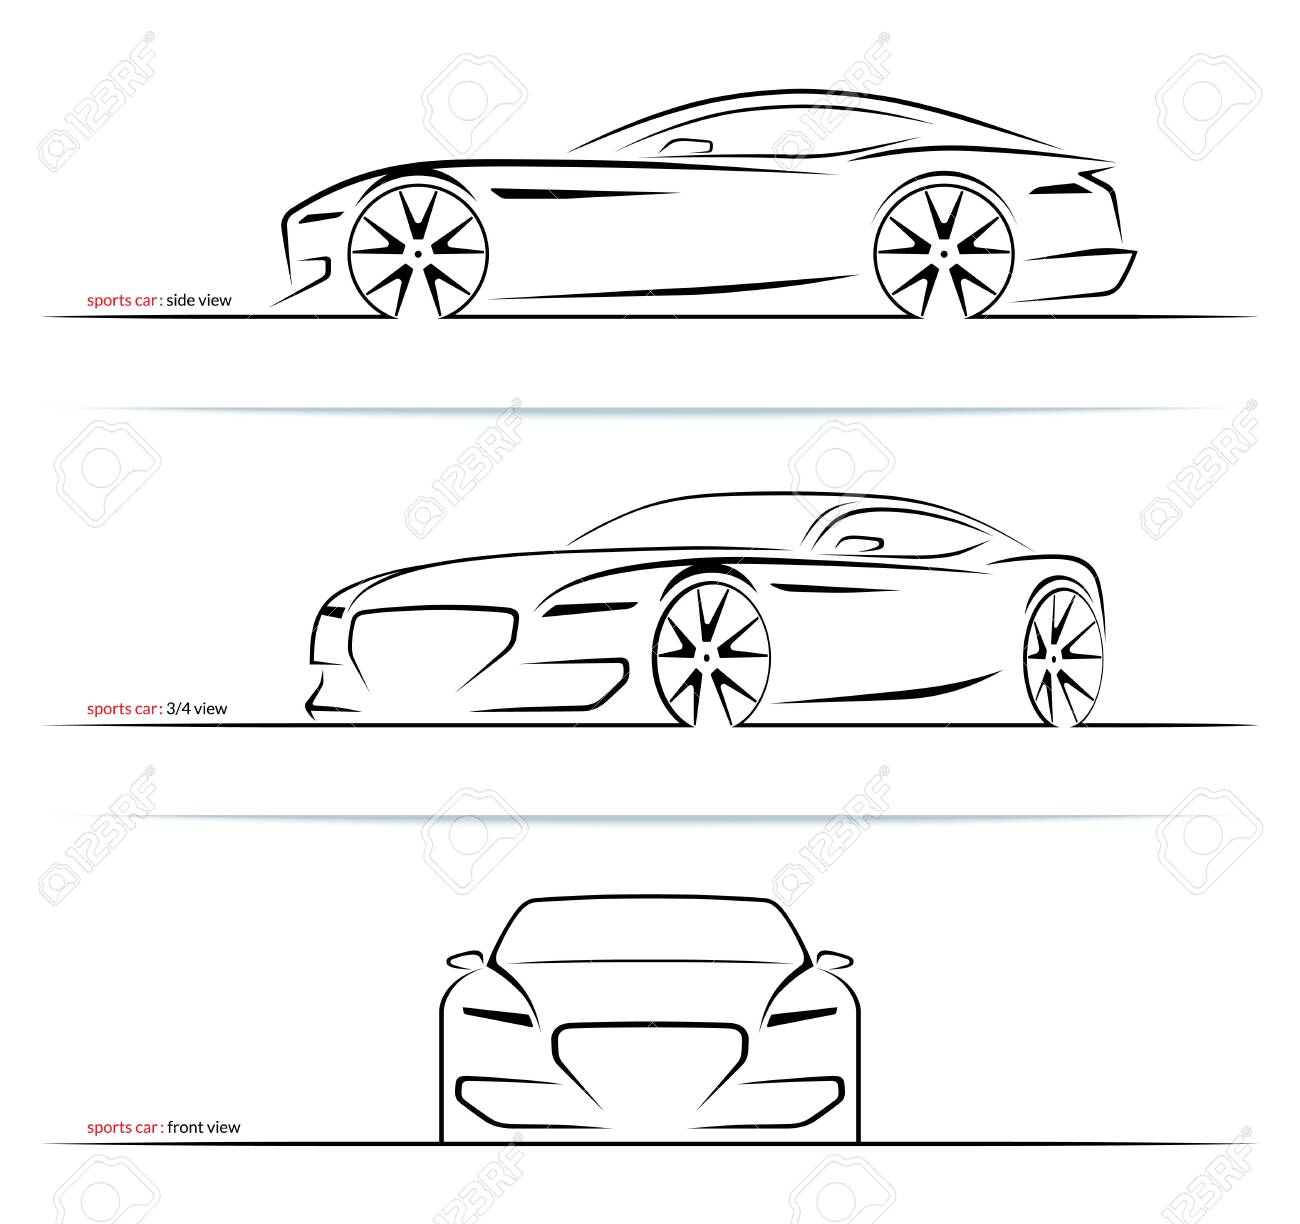 Set of sports car silhouettes isolated on white background. Side, three-quarter and front view. Vector illustration - 120927320